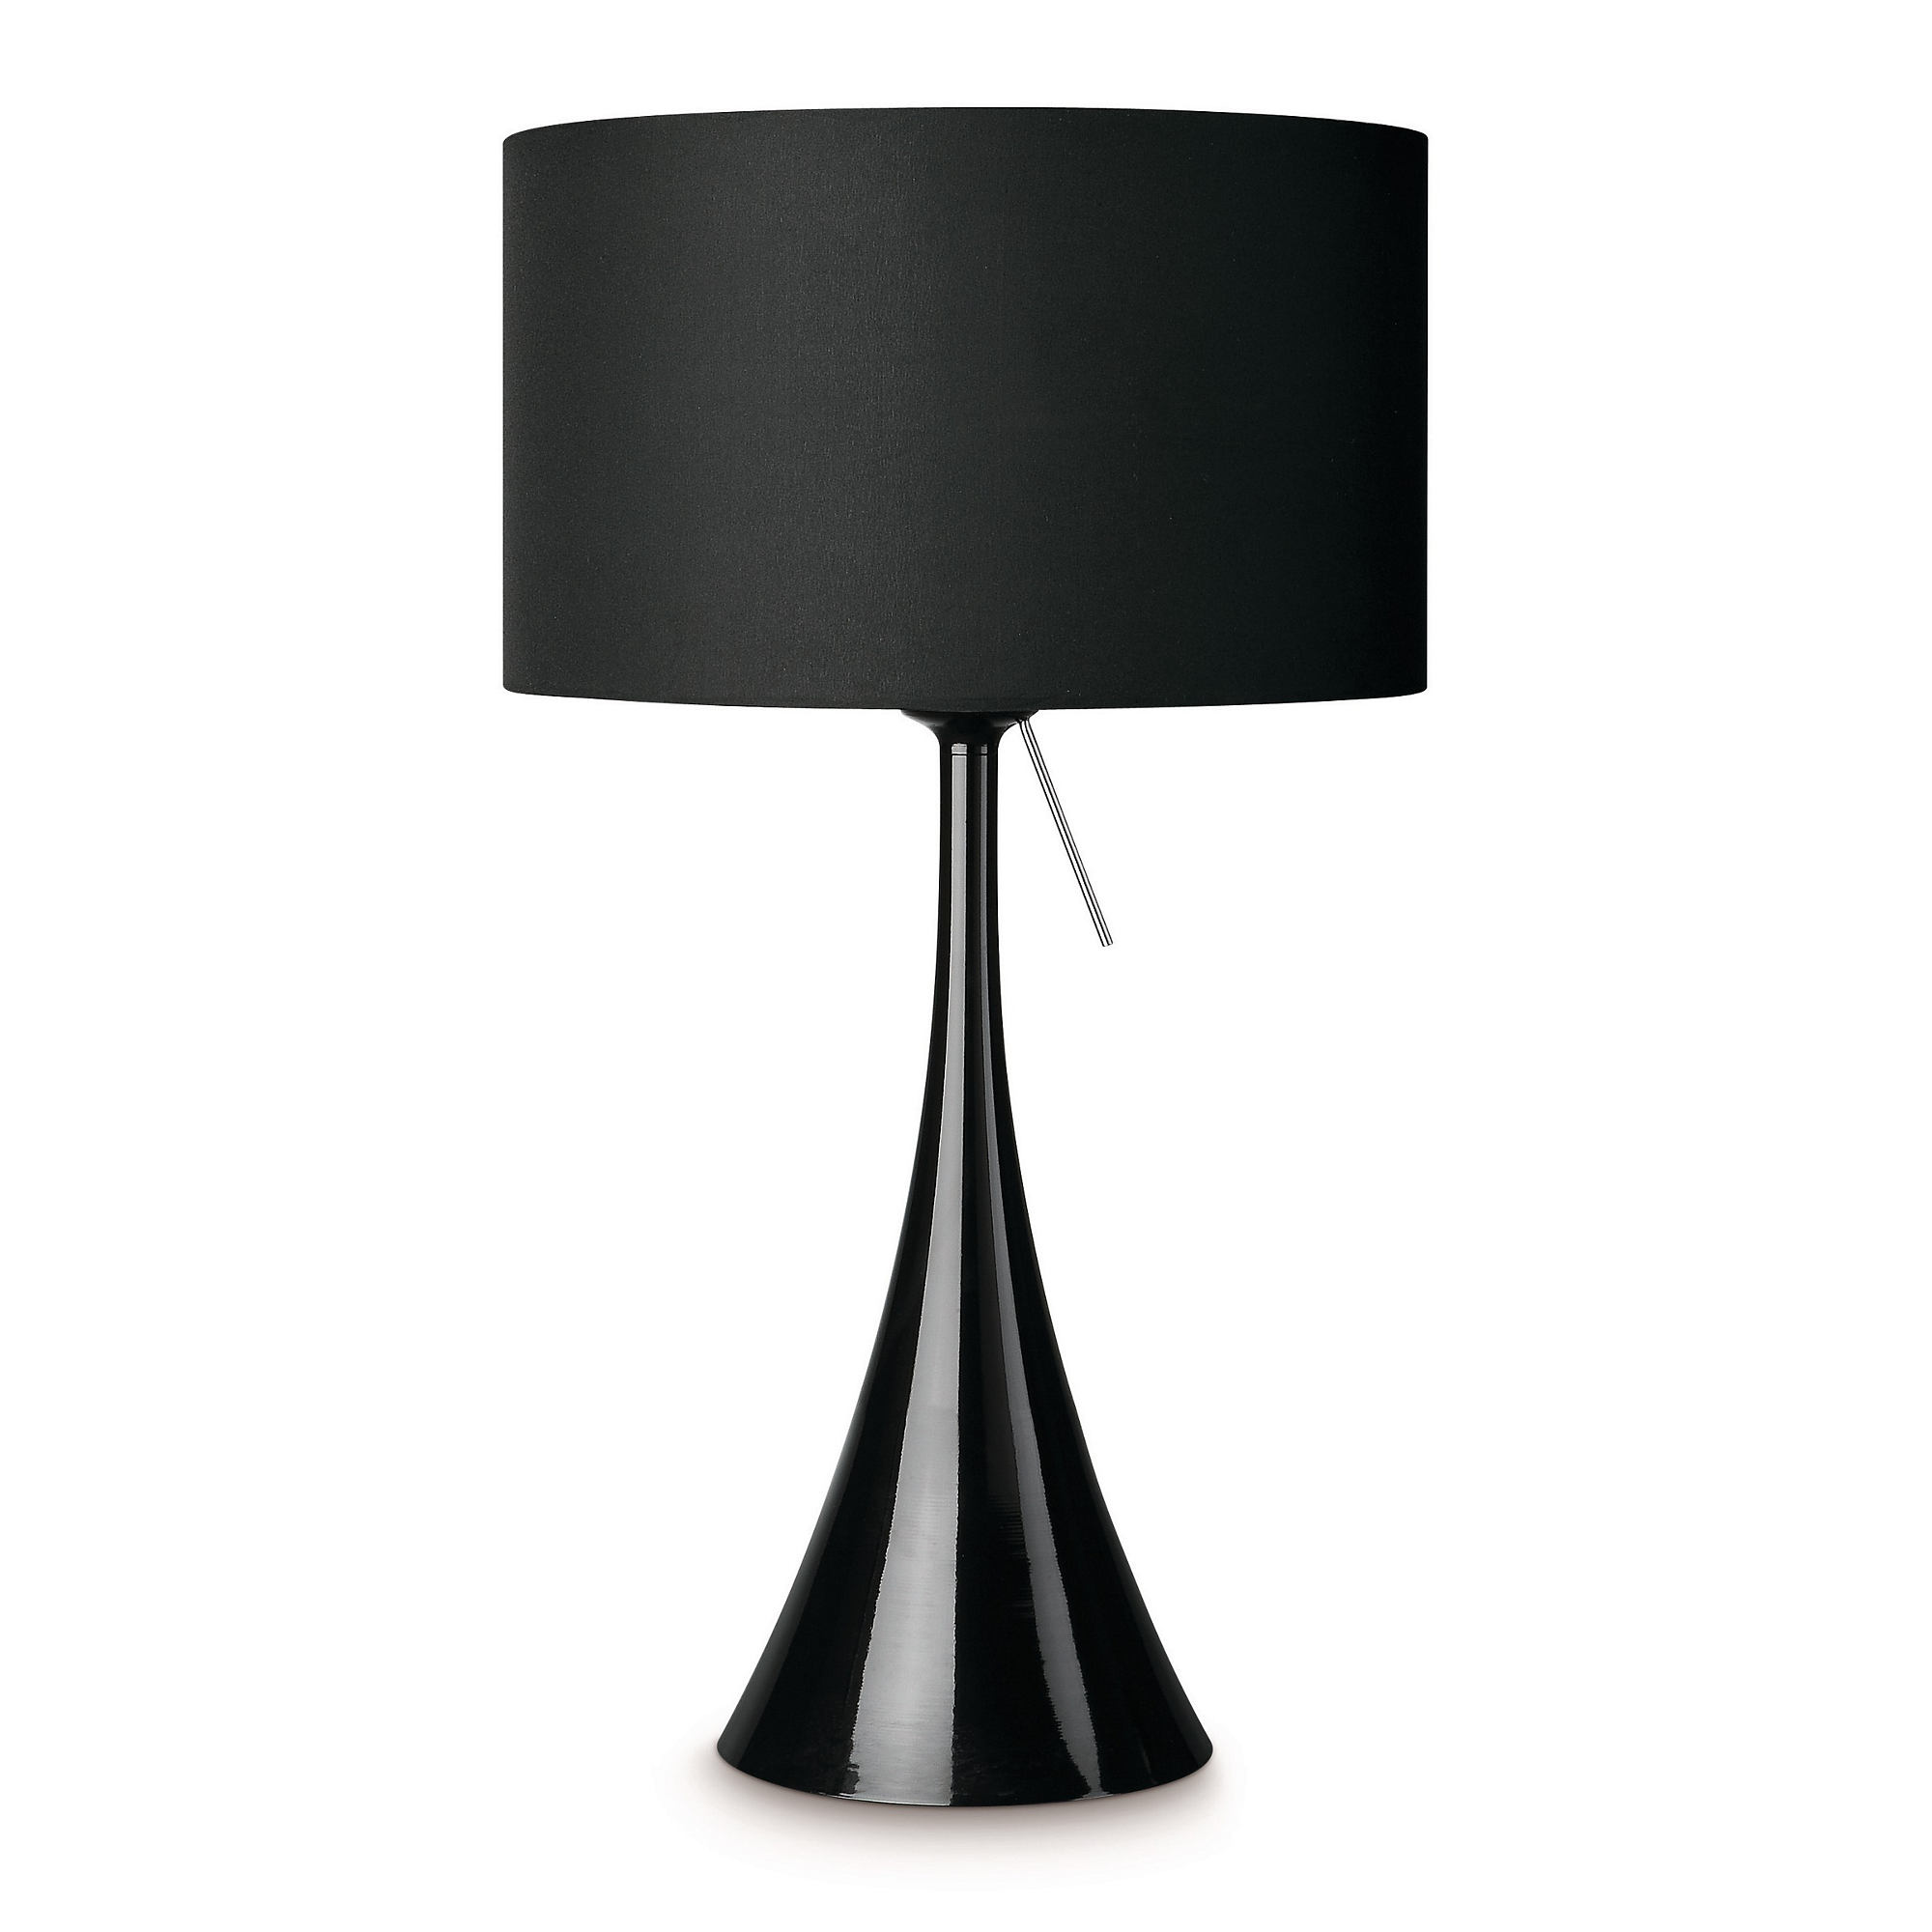 45938 30 Myliving Black Table Lamp Discontinued停產 紅綠燈